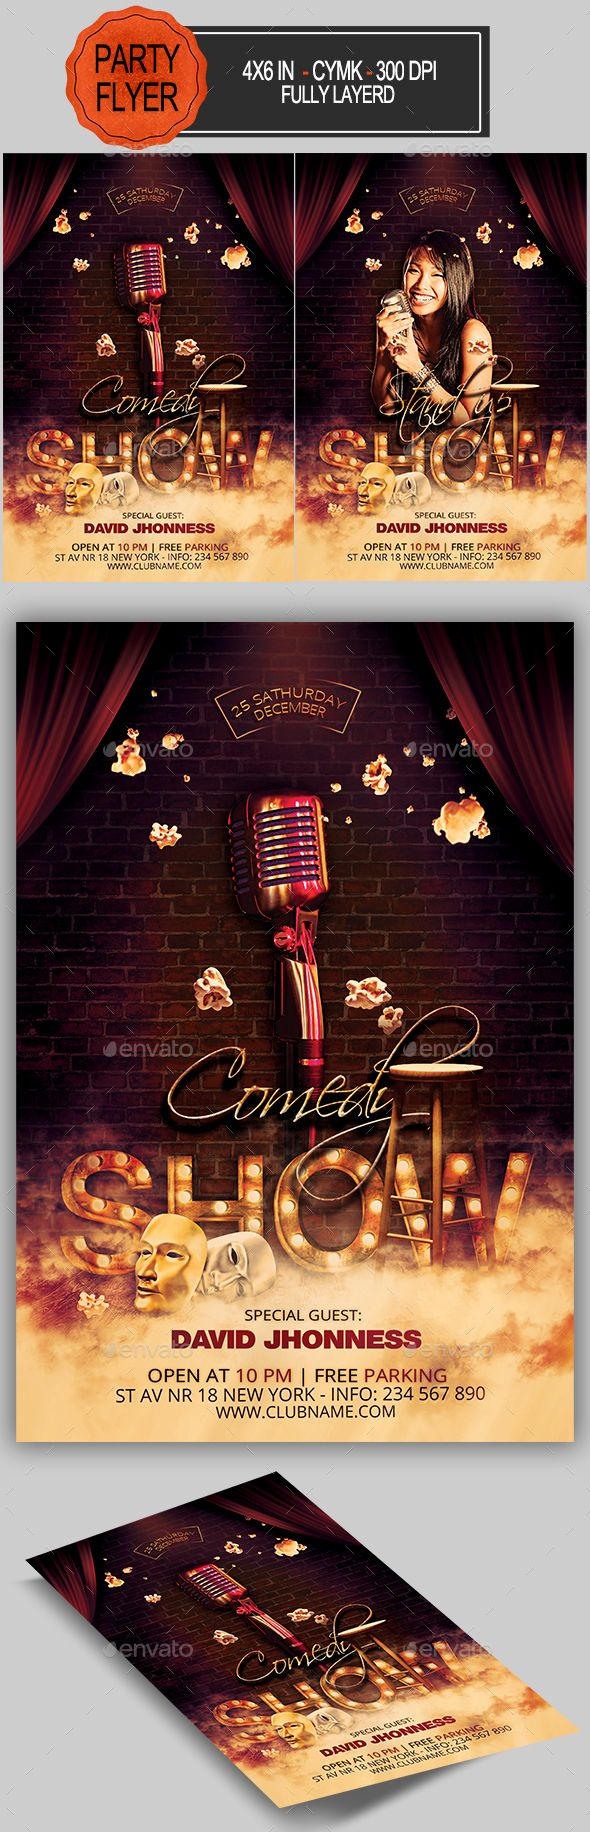 Comedy Show Flyer Template PSD                                                                                                                                                                                 More